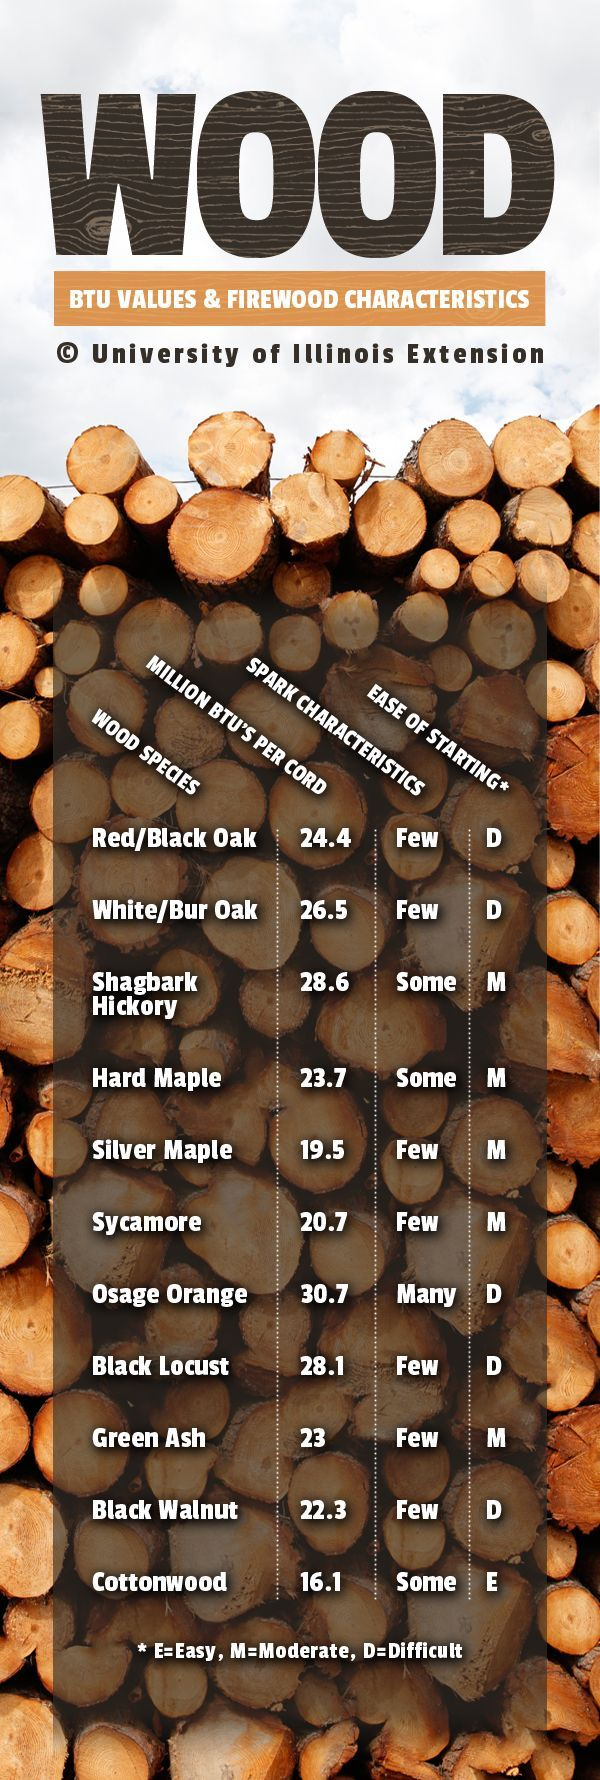 A handy chart to have for purchasing and burning firewood!